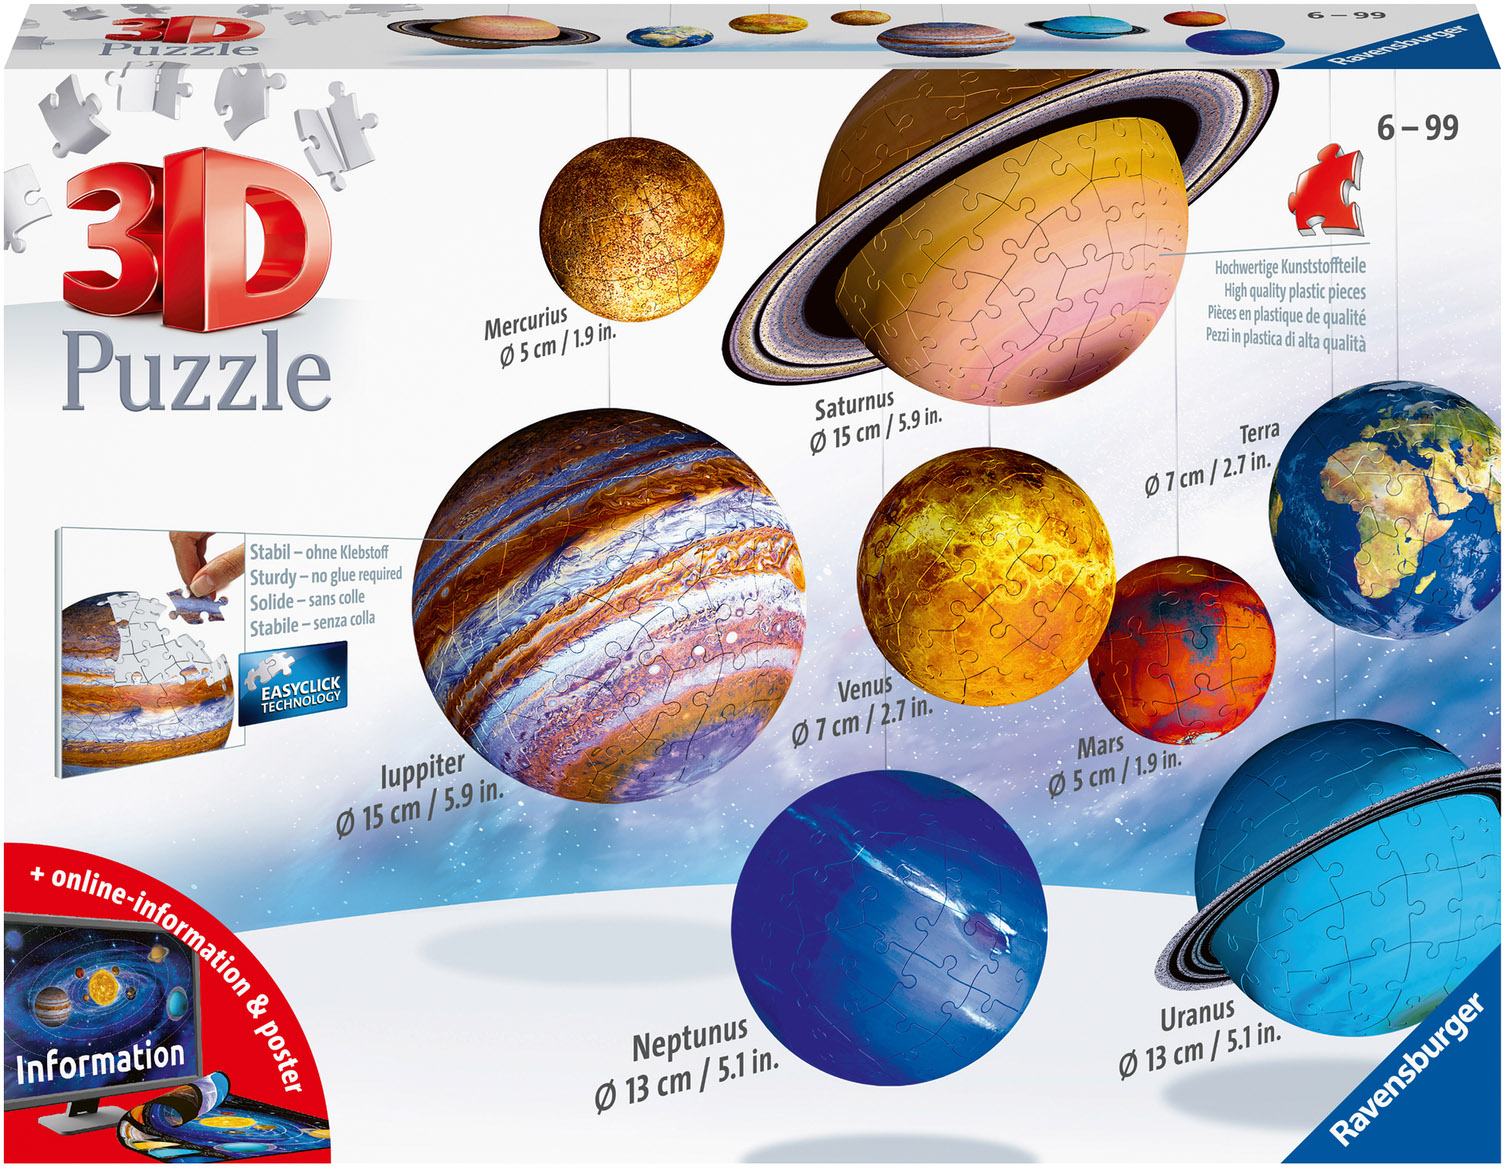 Ravensburger 3D-Puzzle Planetensystem, Made in Europe bunt Kinder Ab 6-8 Jahren Altersempfehlung Puzzles